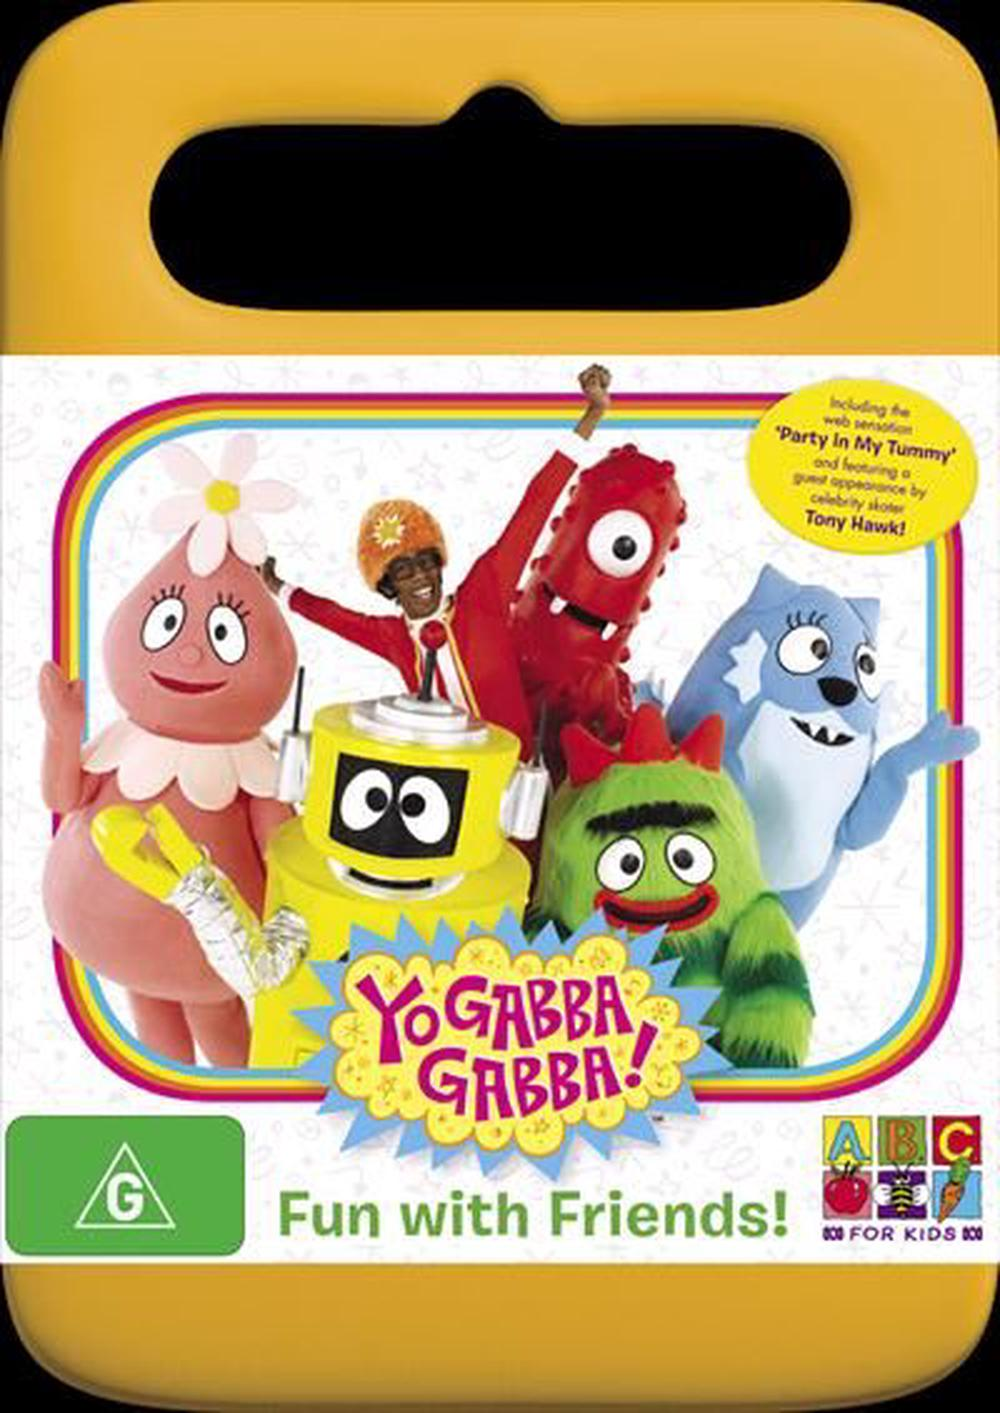 Yo Gabba Gabba Fun With Friends Dvd Buy Online At The Nile